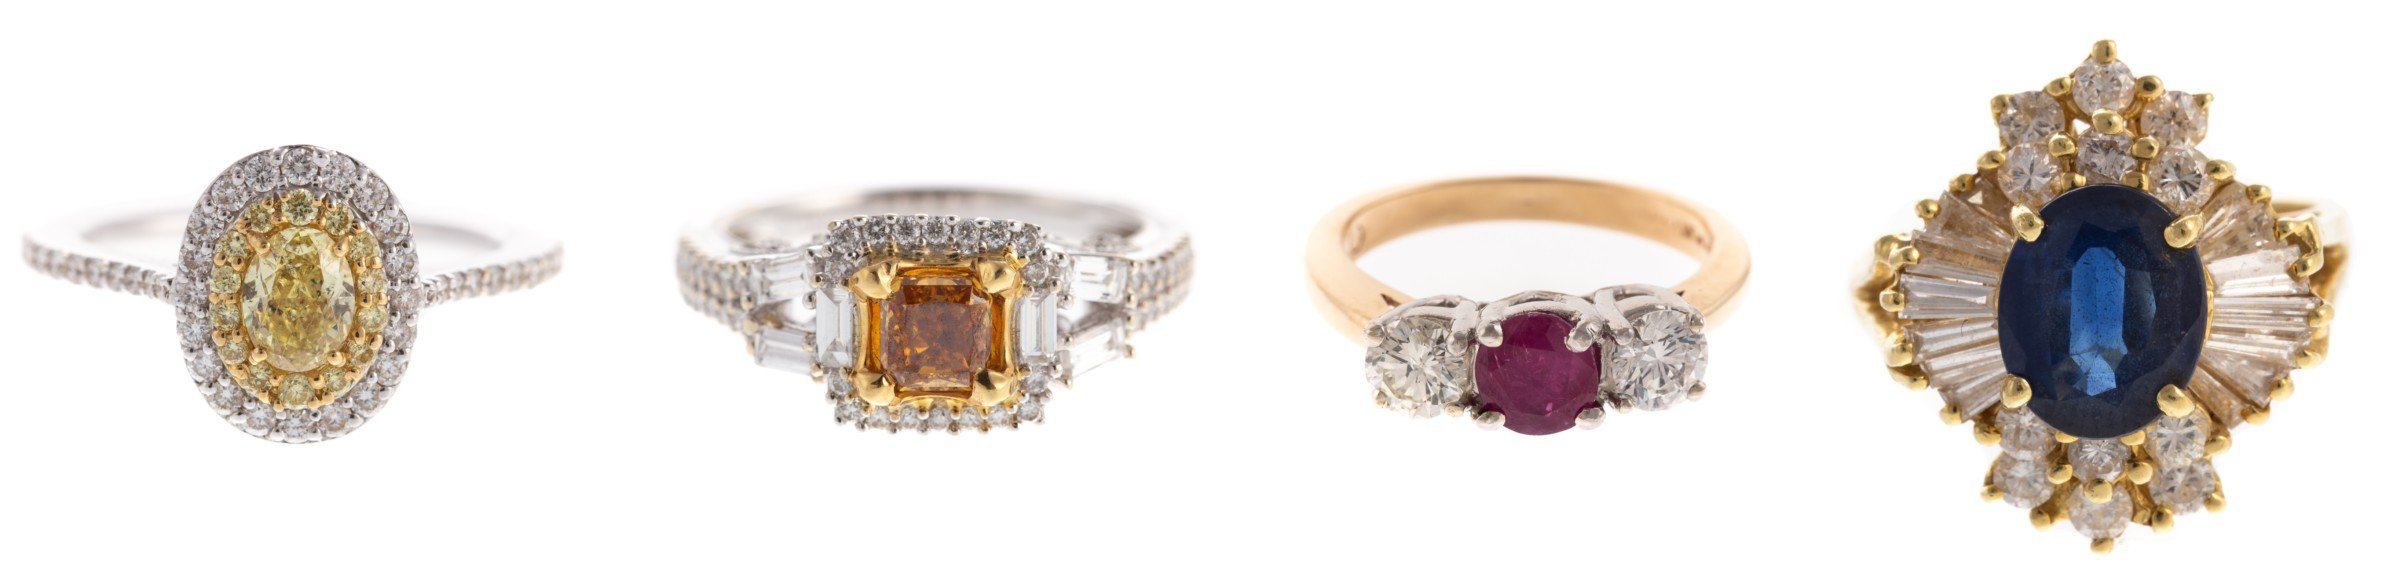 3 Reasons to Buy an Engagement Ring at Auction